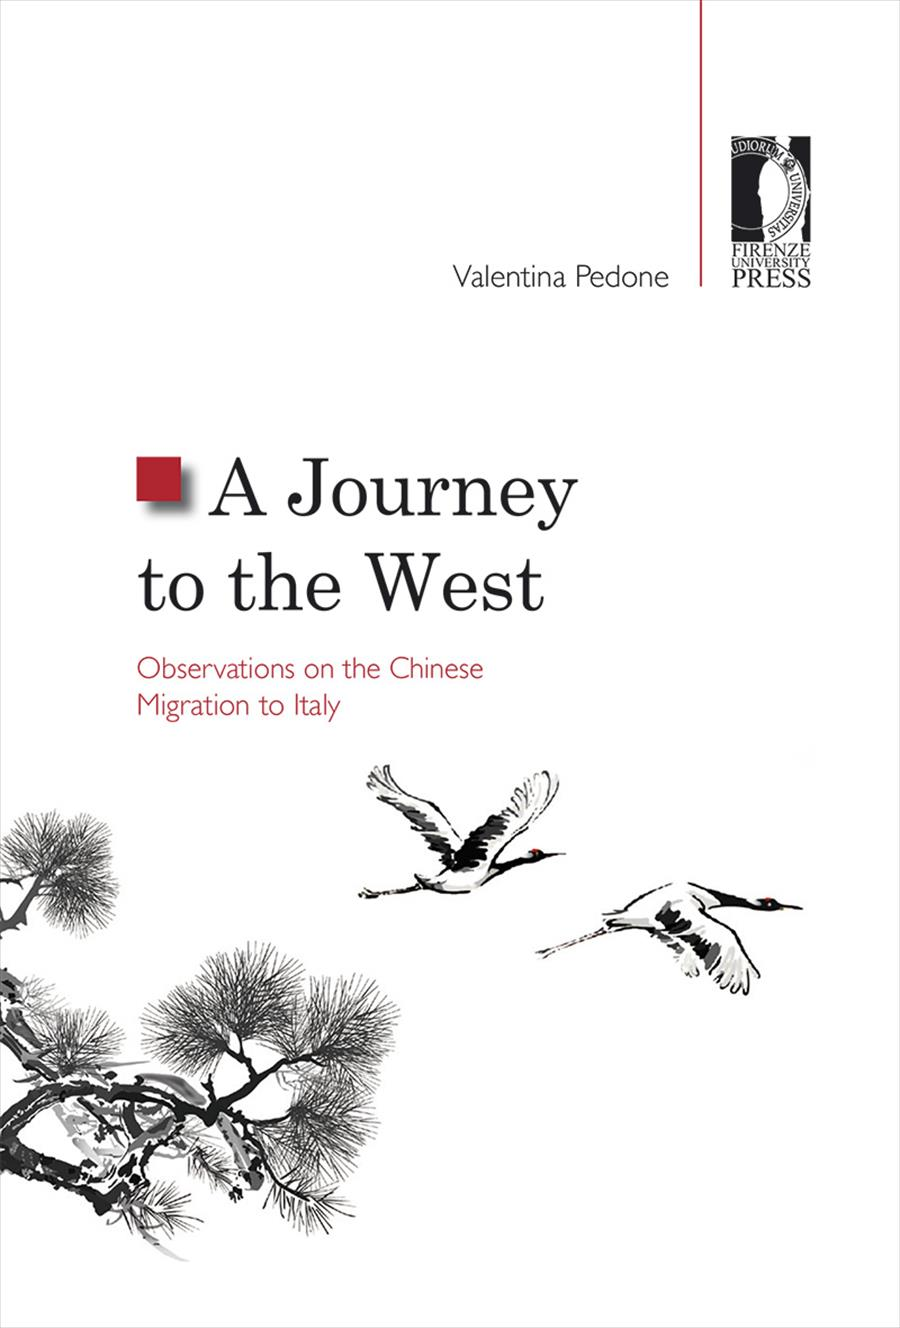 A Journey to the West. Observations on the Chinese Migration to Italy